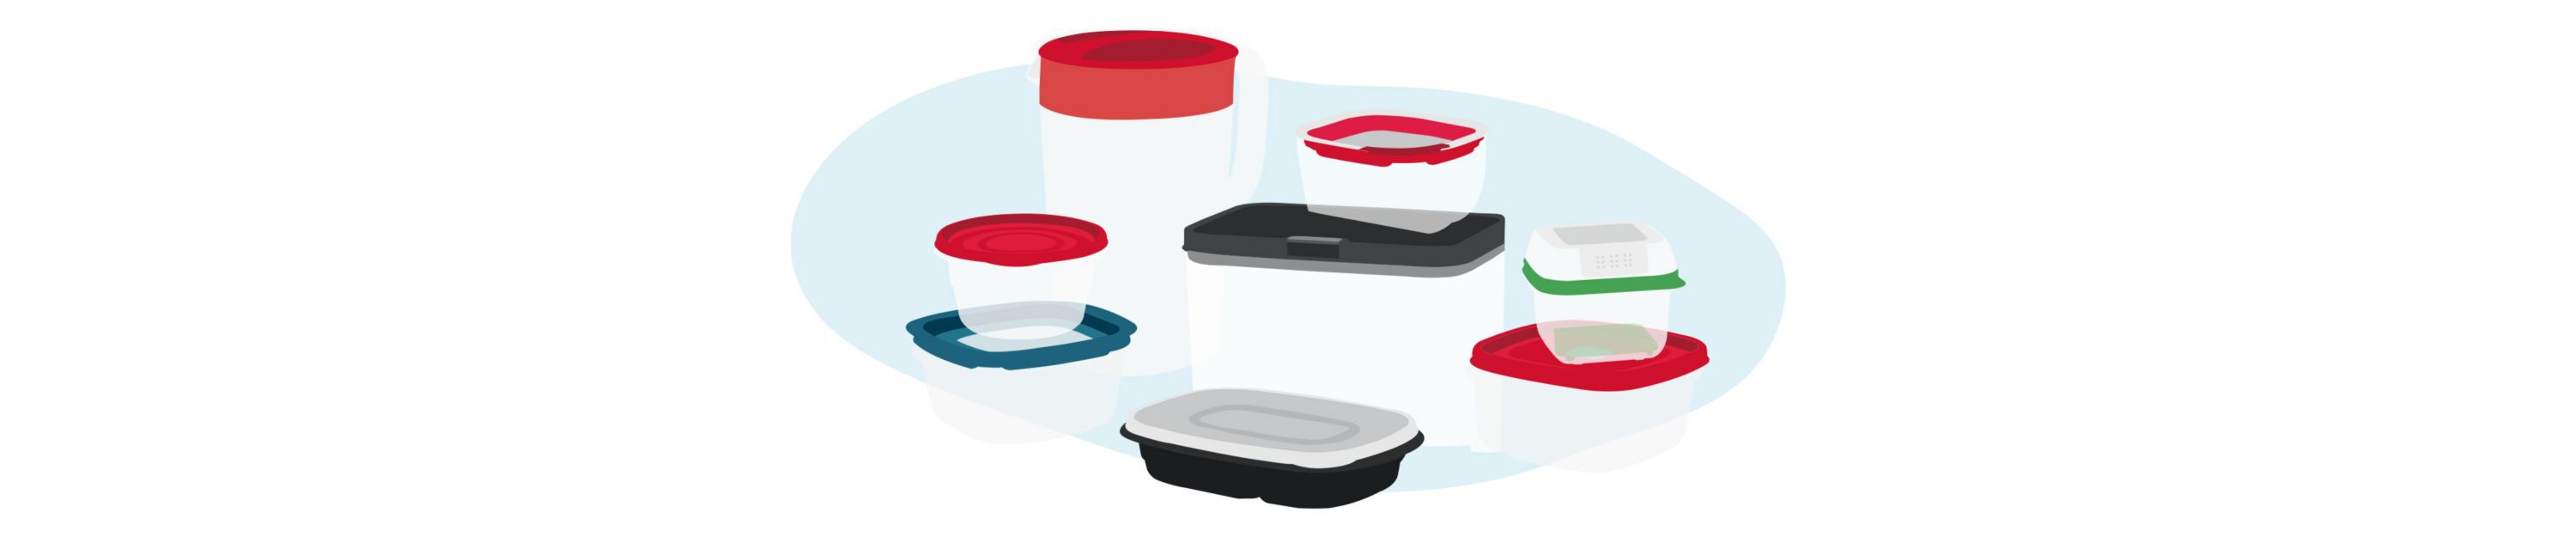 food storage containers in various sizes